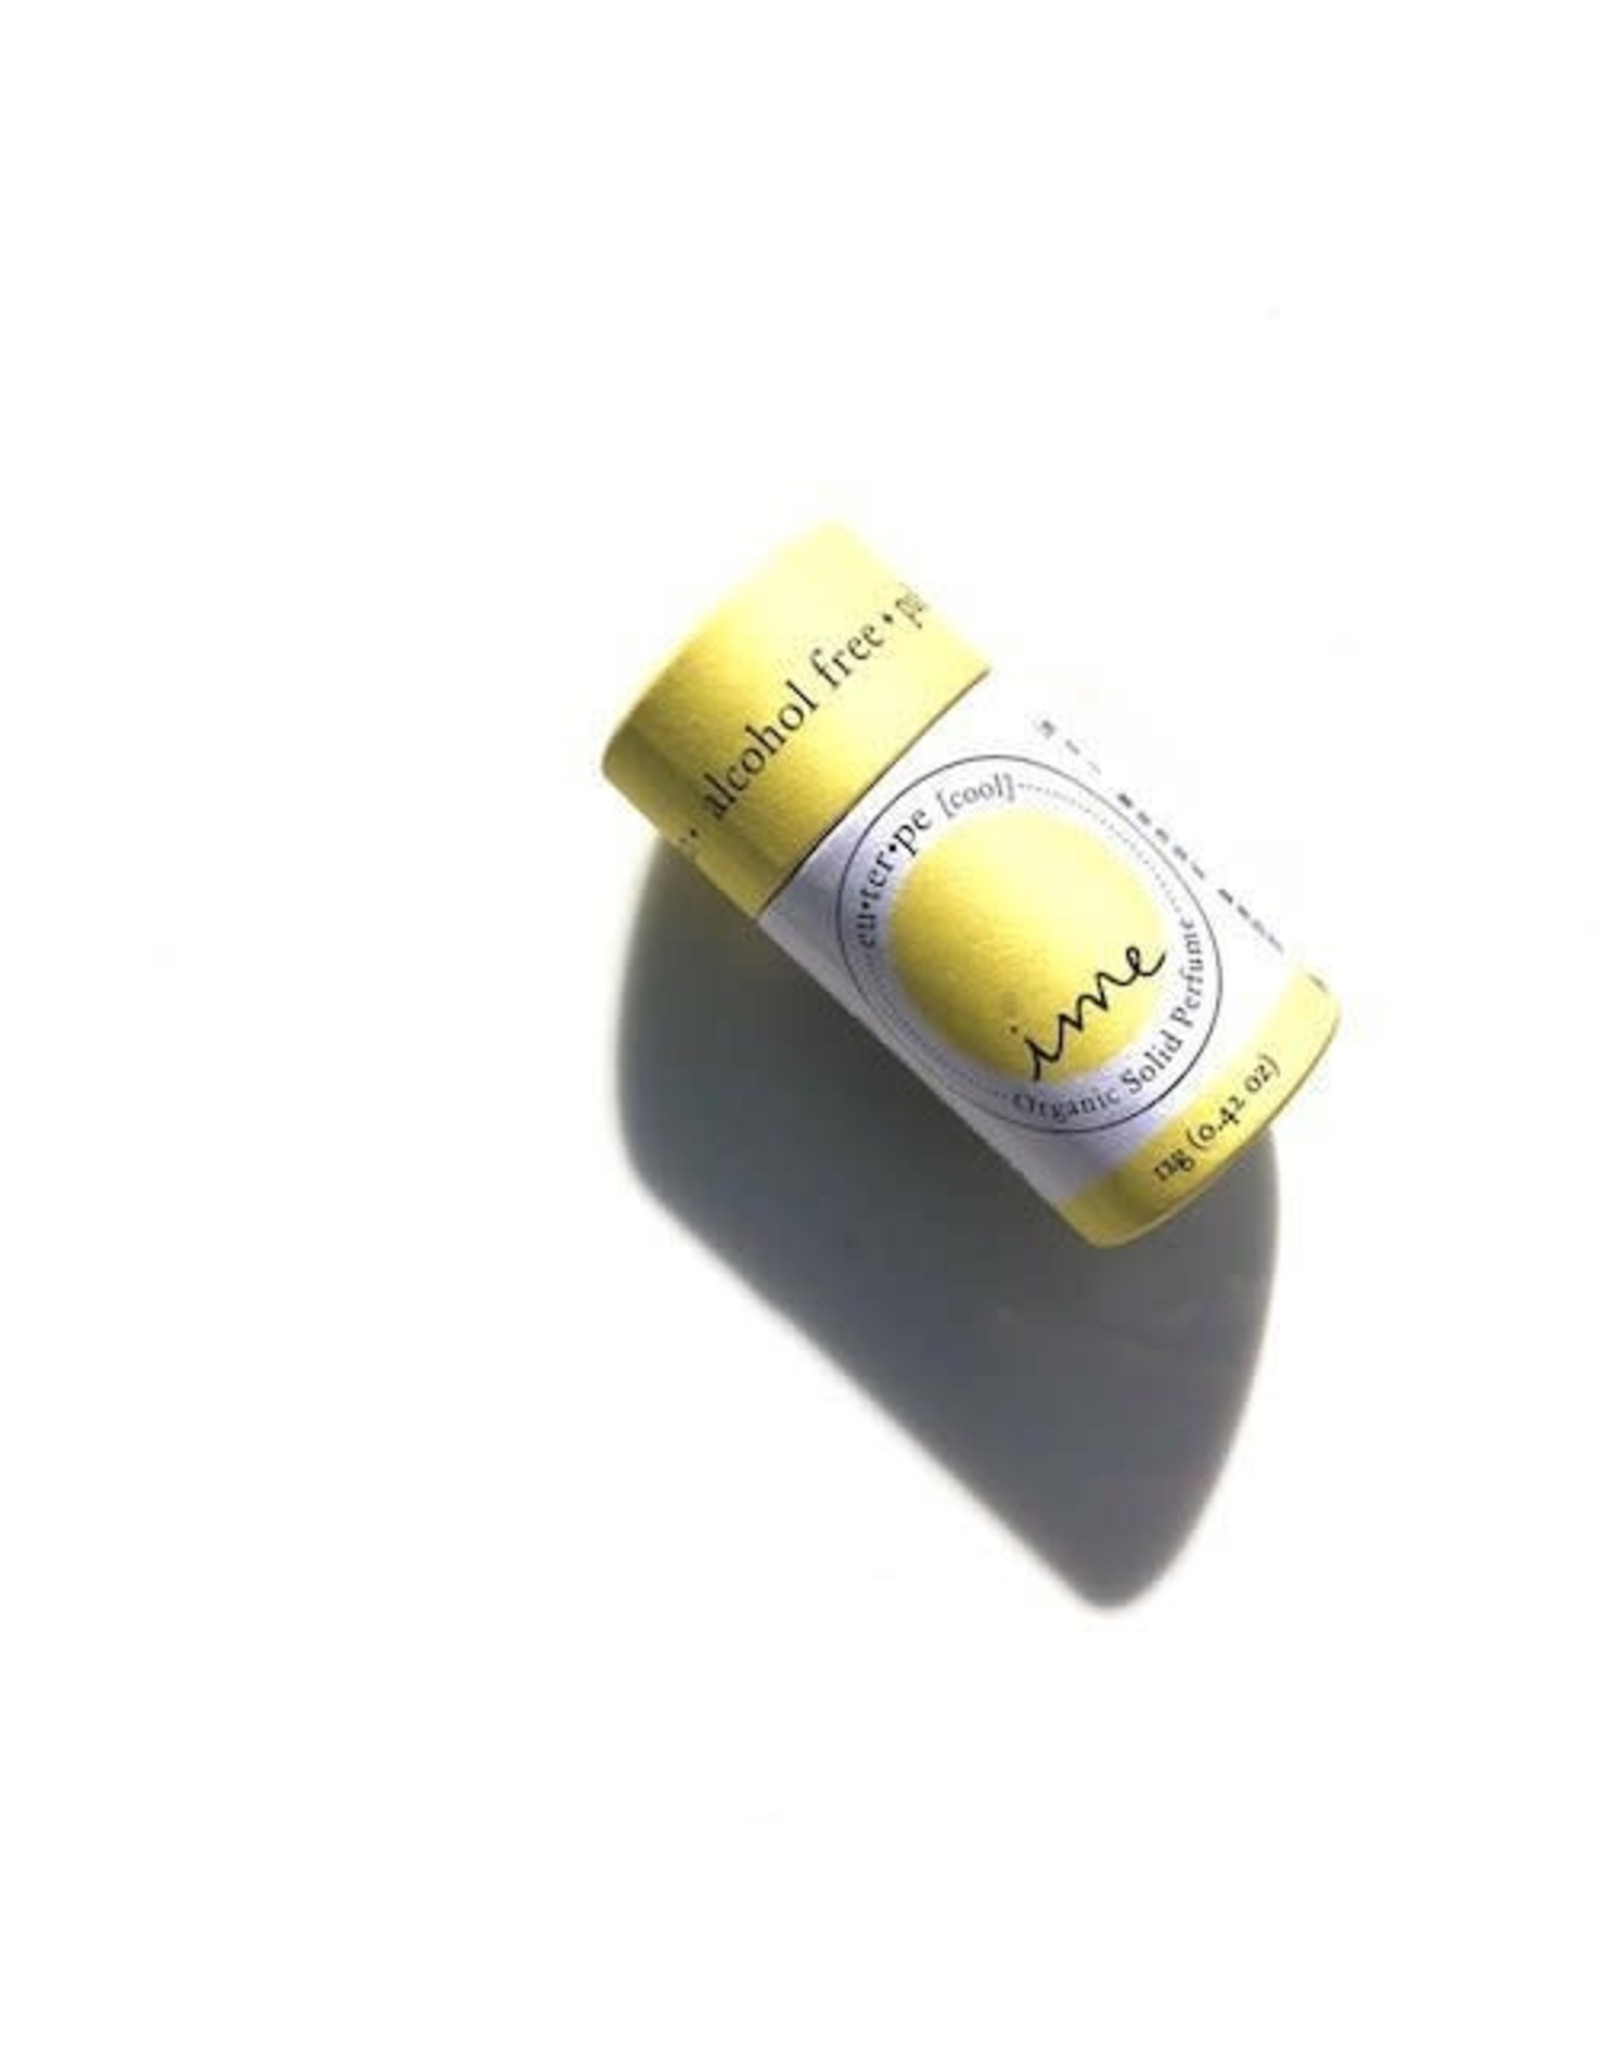 IME Solid Perfume - Euterpe (Cool)  - 12g